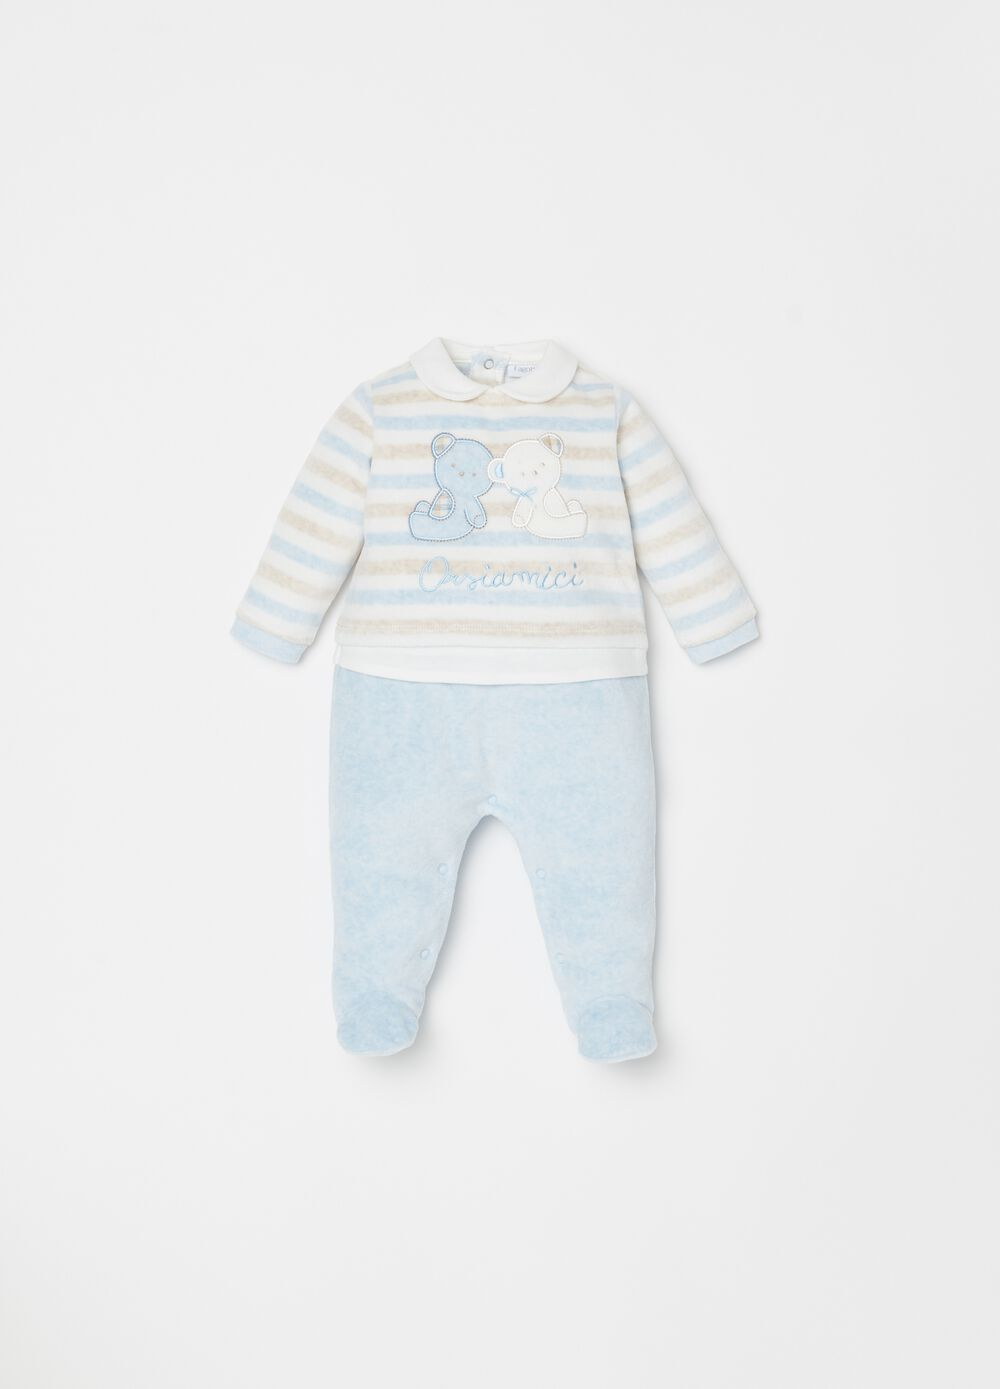 Onesie with feet and bear friends embroidery